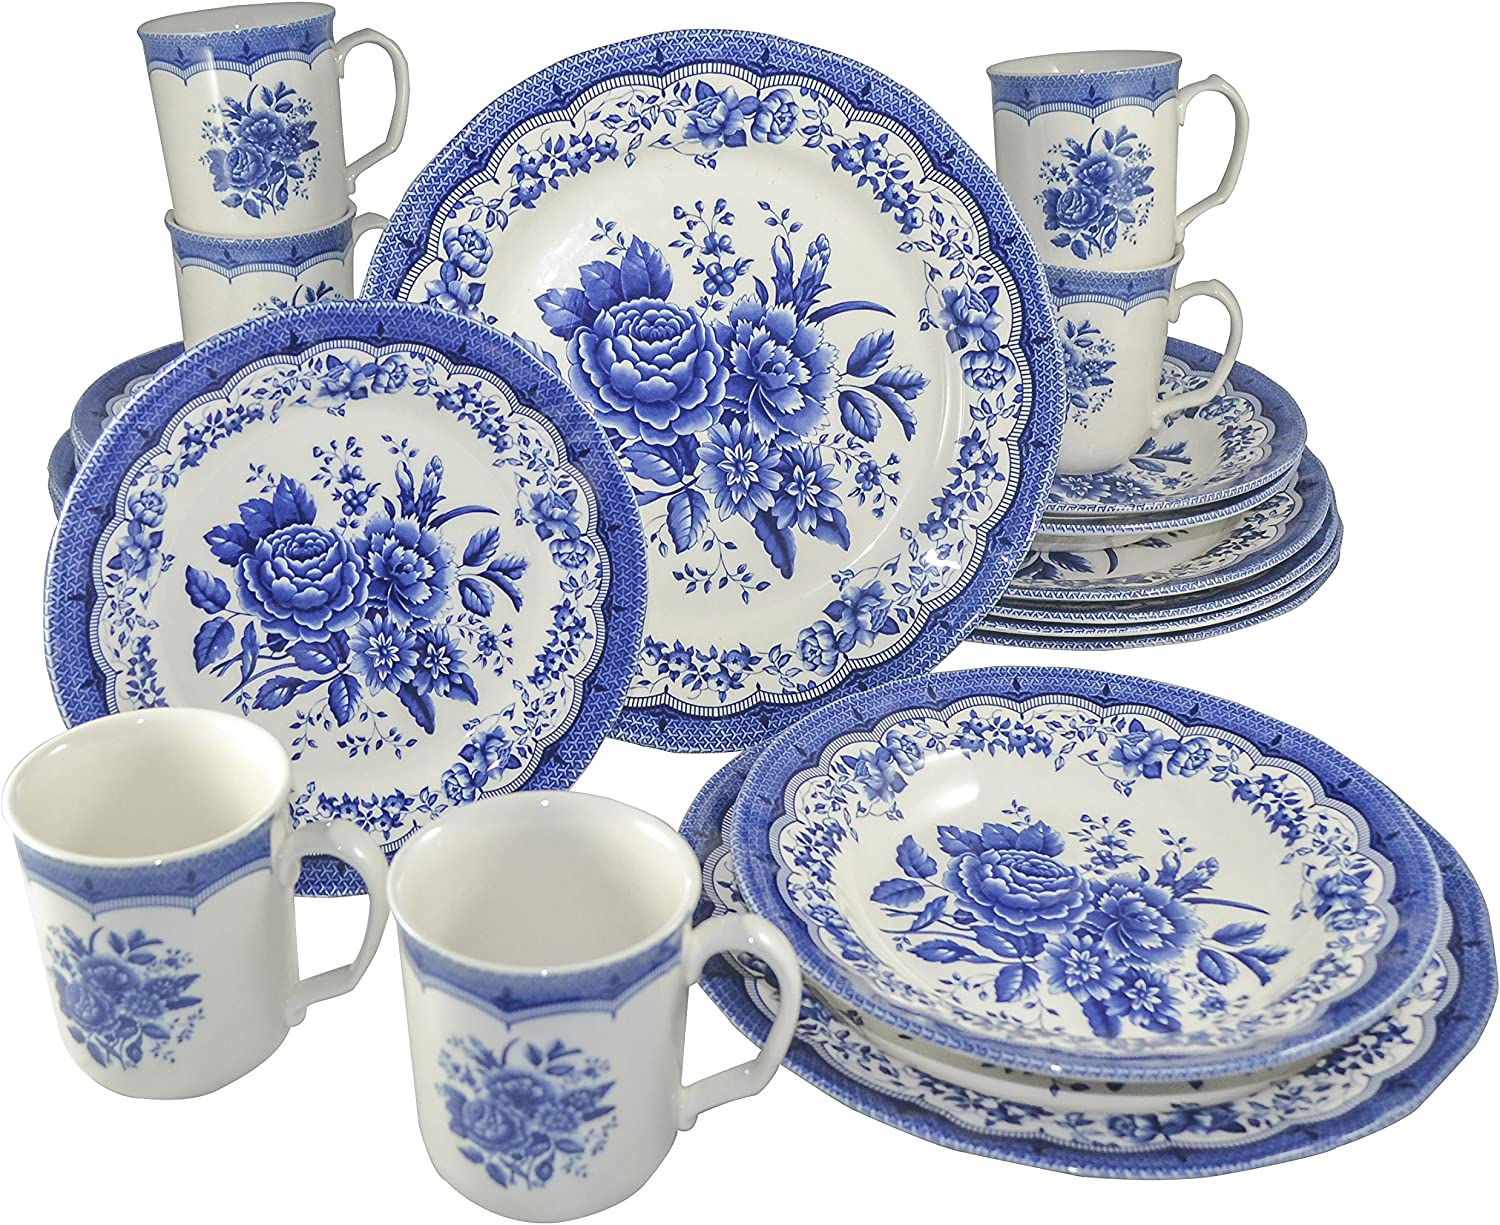 Amazon Com Tudor Royal Collection 24 Piece Premium Quality Porcelain Dinnerware Set Service For 6 Victoria Blue See 10 Designs Inside Dinnerware Sets